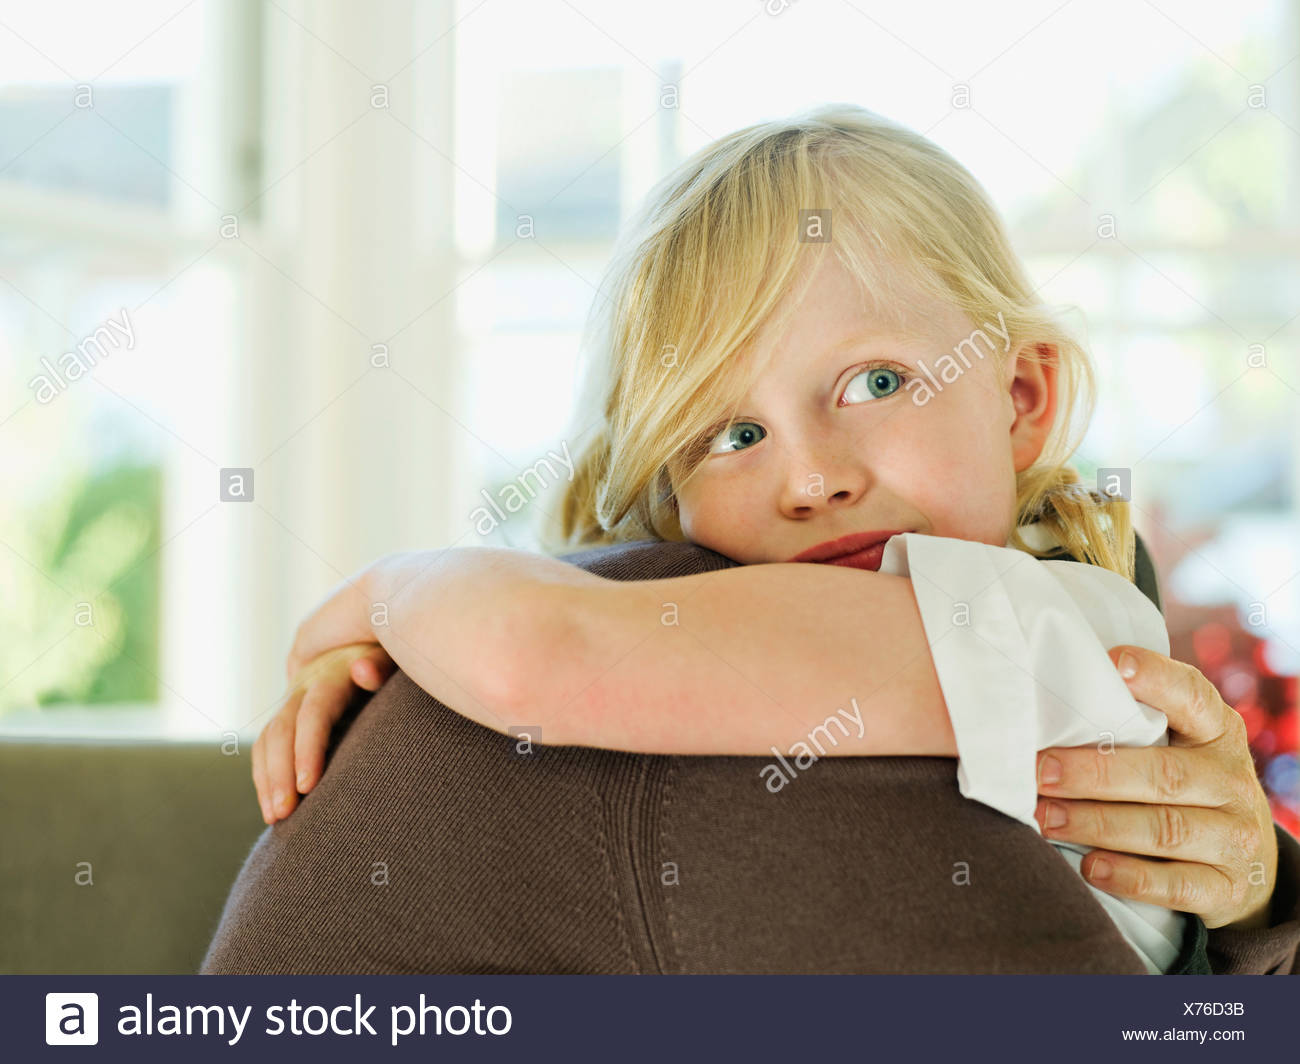 A little girl hugging a loved one Stock Photo